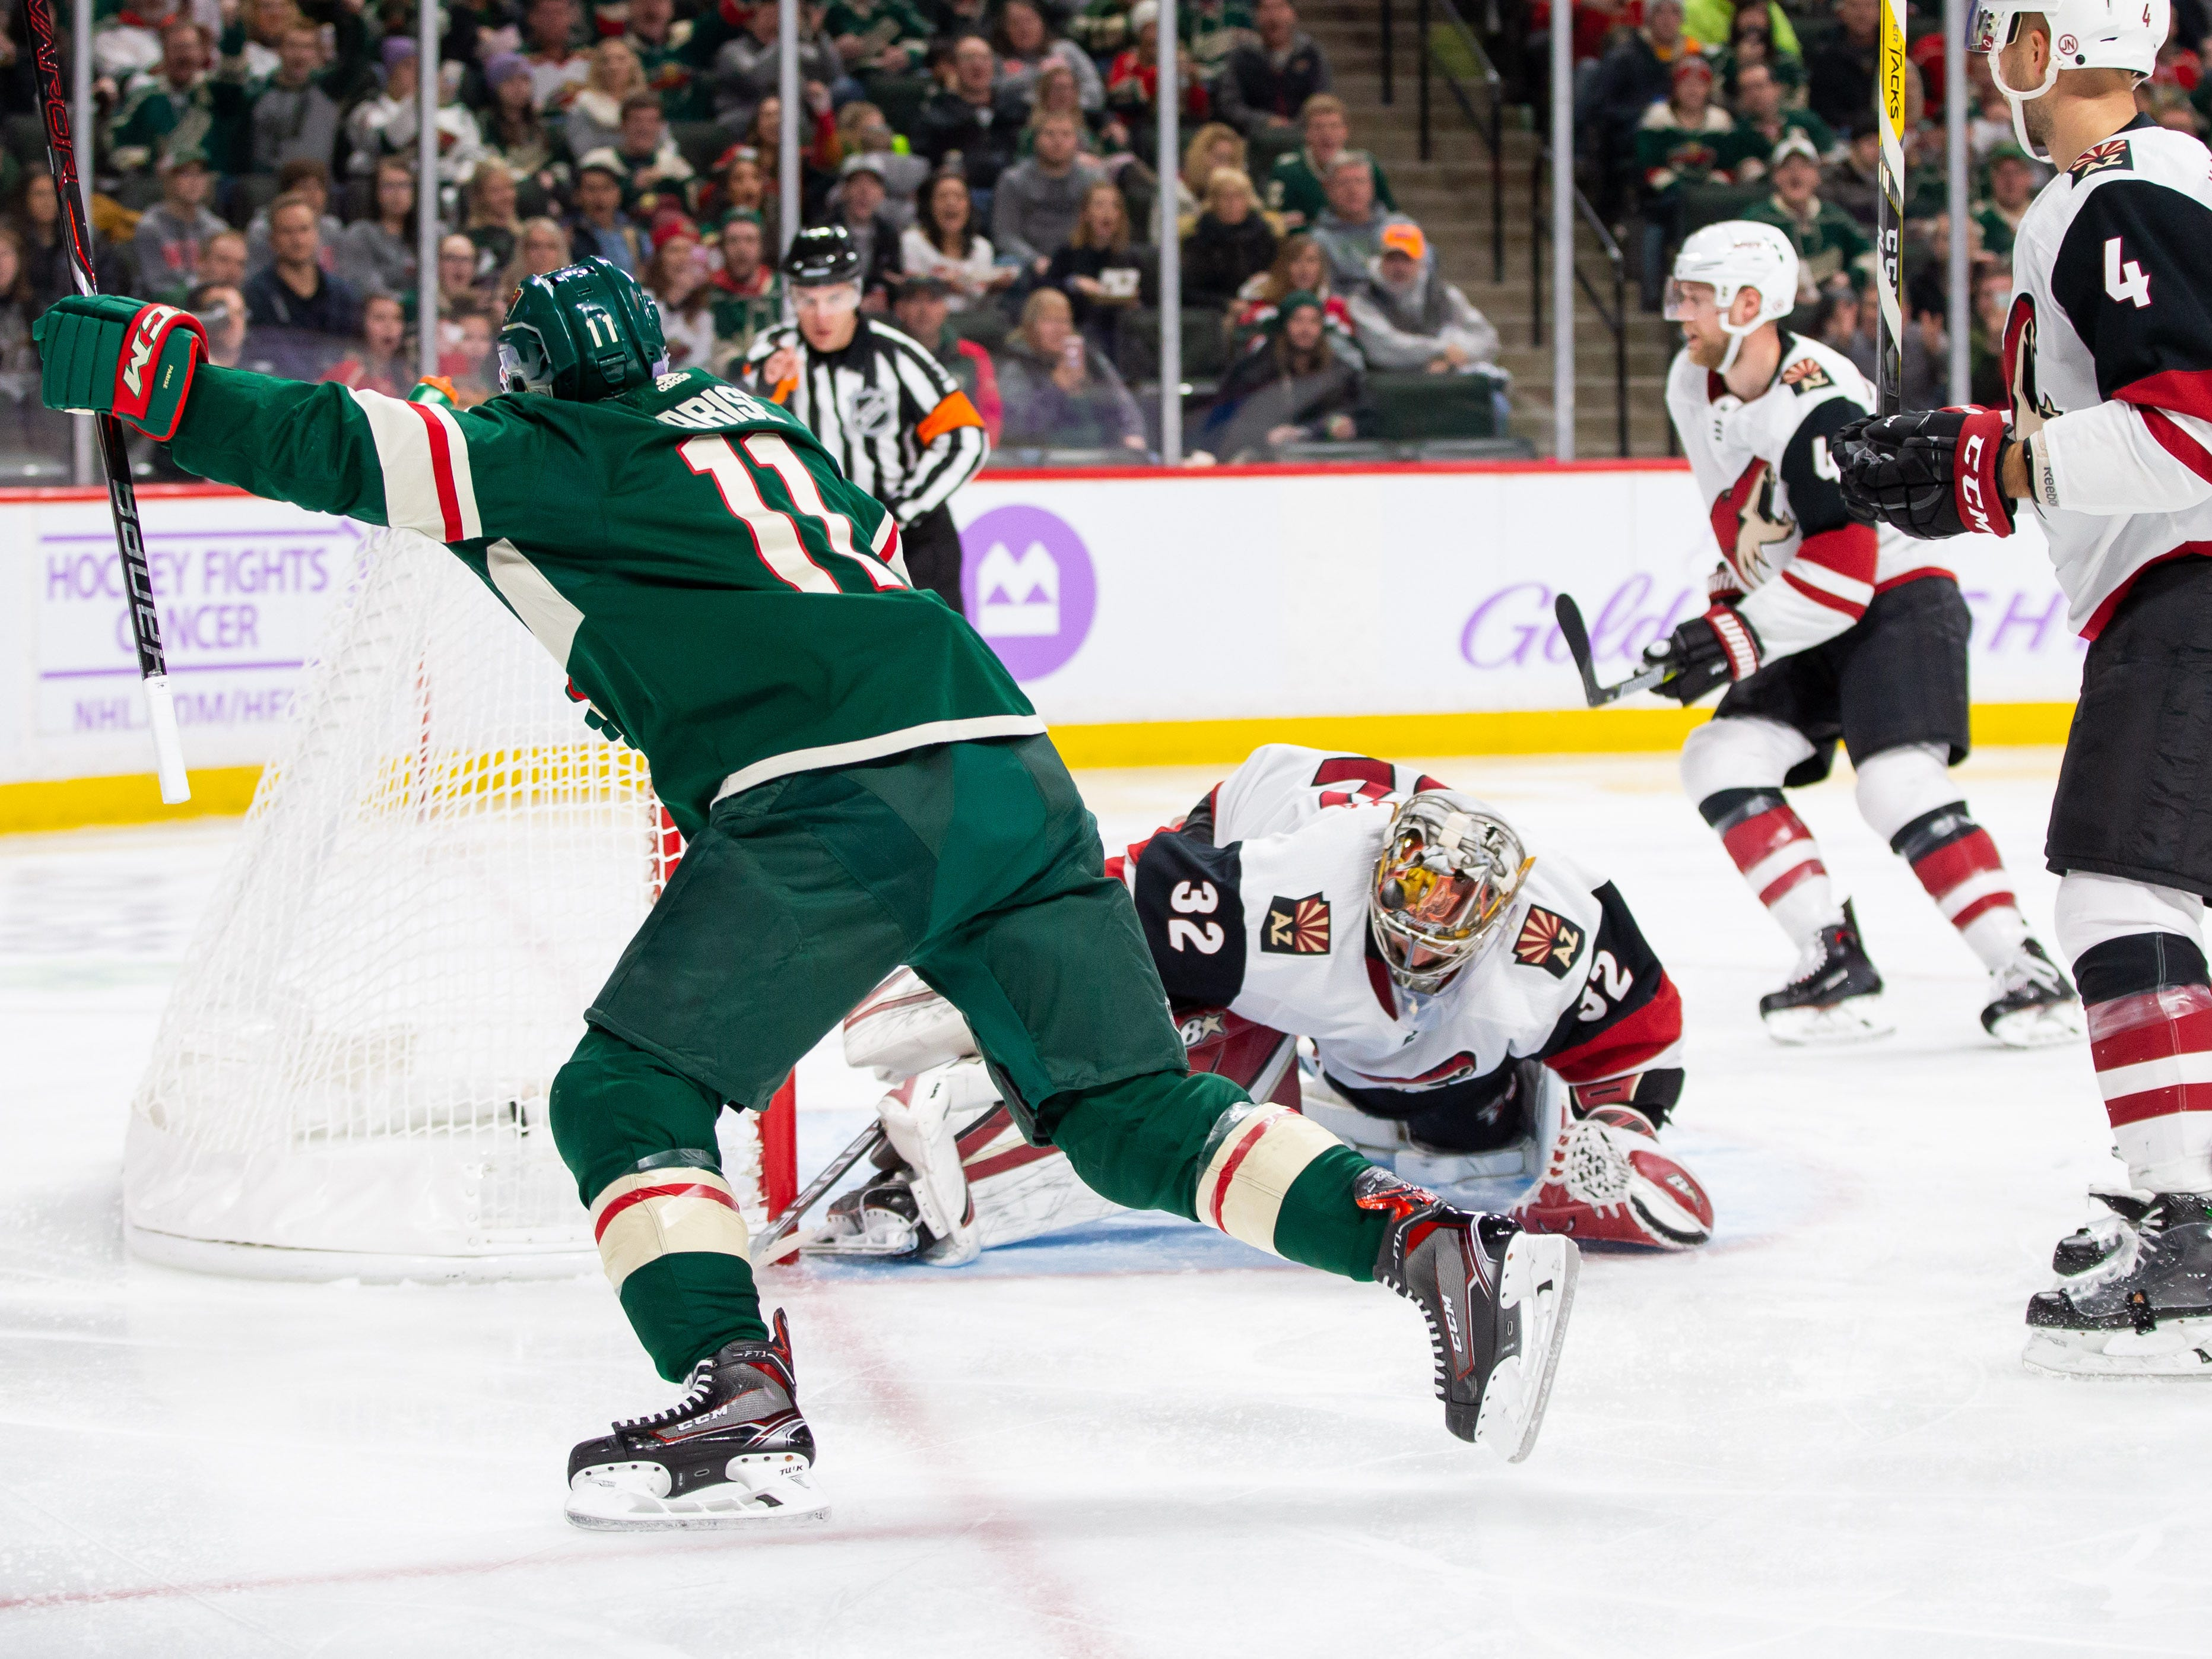 Nov 27, 2018; Saint Paul, MN, USA; Minnesota Wild forward Zach Parise (11) scores in the second period against Phoenix Coyotes goalie Antti Raanta (32) at Xcel Energy Center. Mandatory Credit: Brad Rempel-USA TODAY Sports